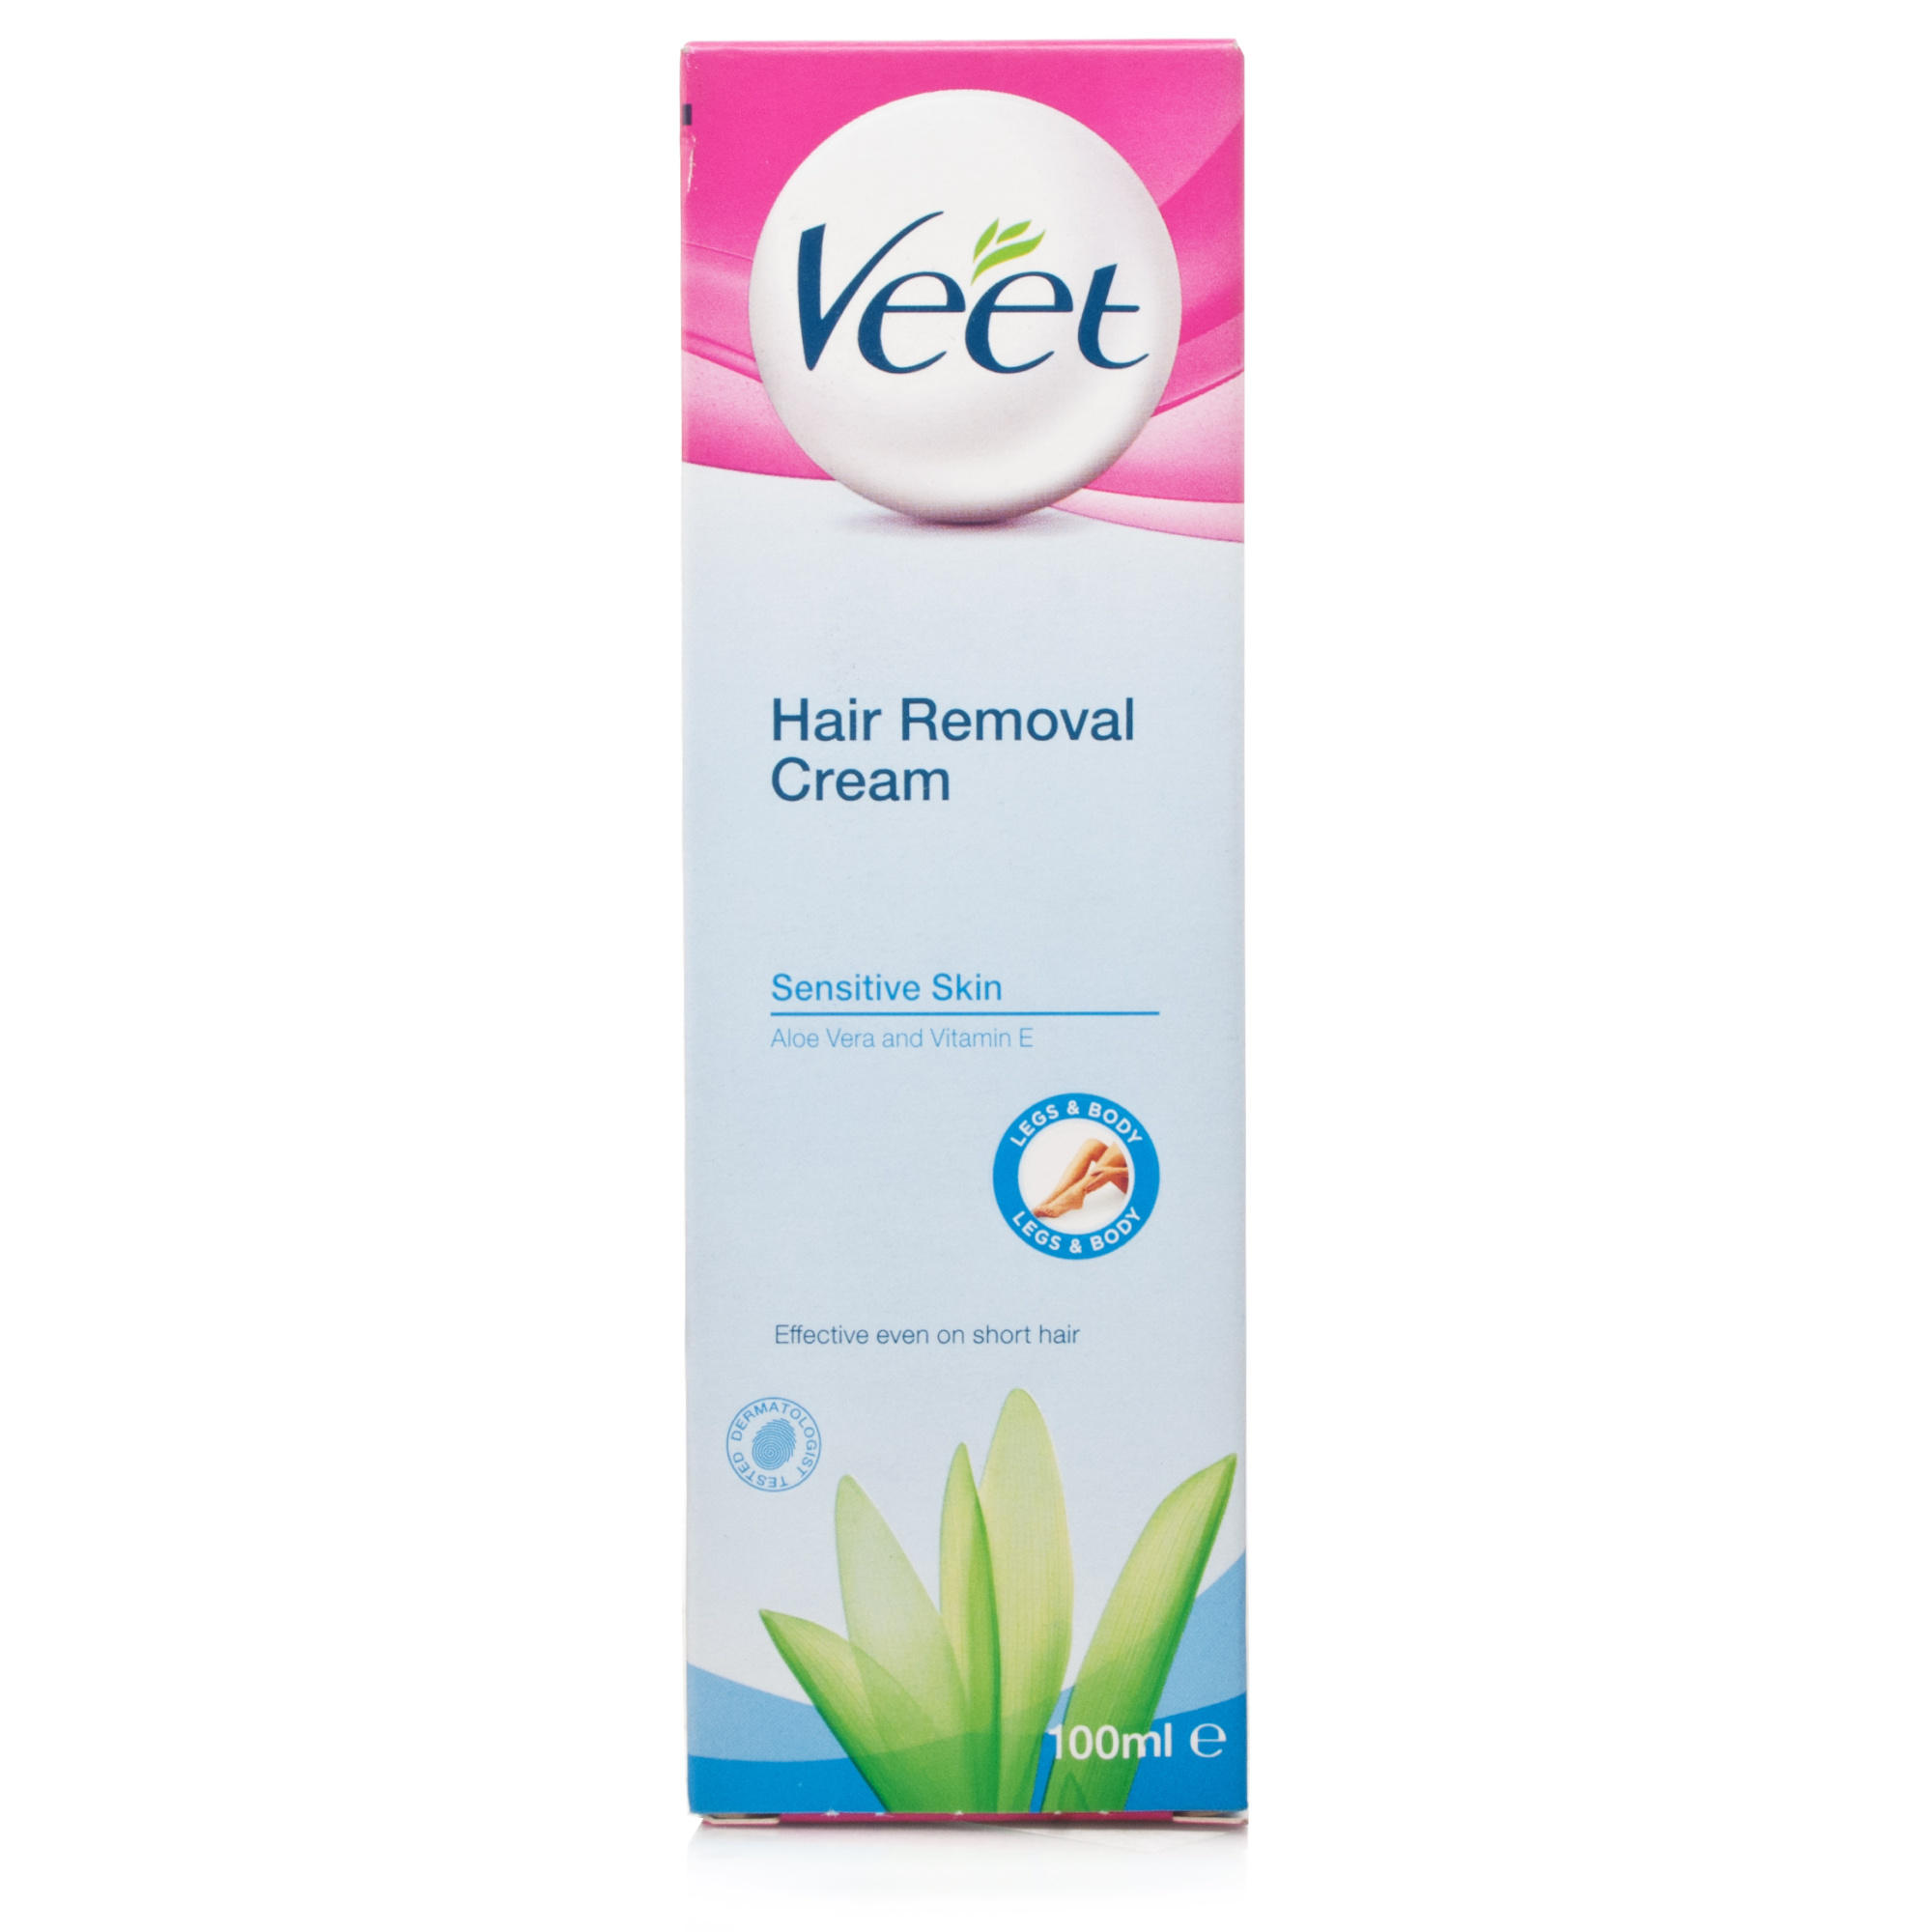 Veet 5 Minute Cream for Sensitive Skin | Hair Removal ...